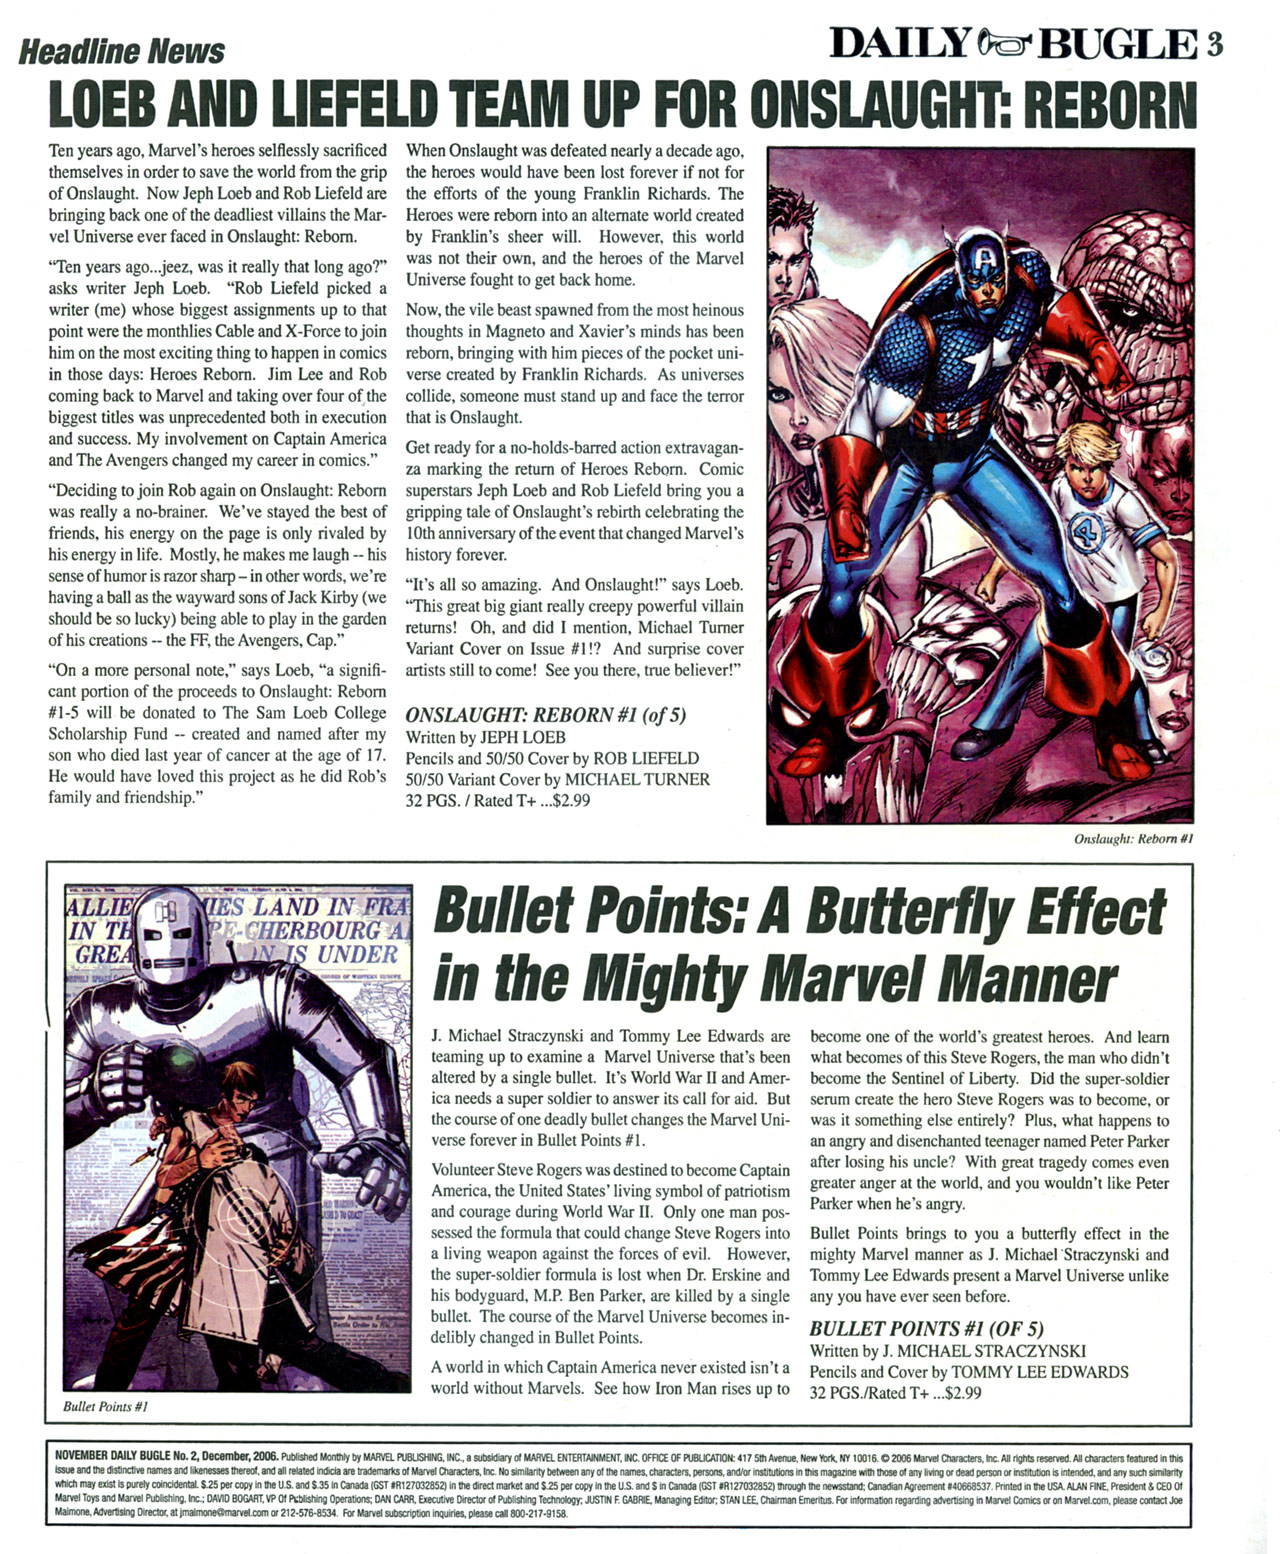 Read online Daily Bugle (2006) comic -  Issue #2 - 4